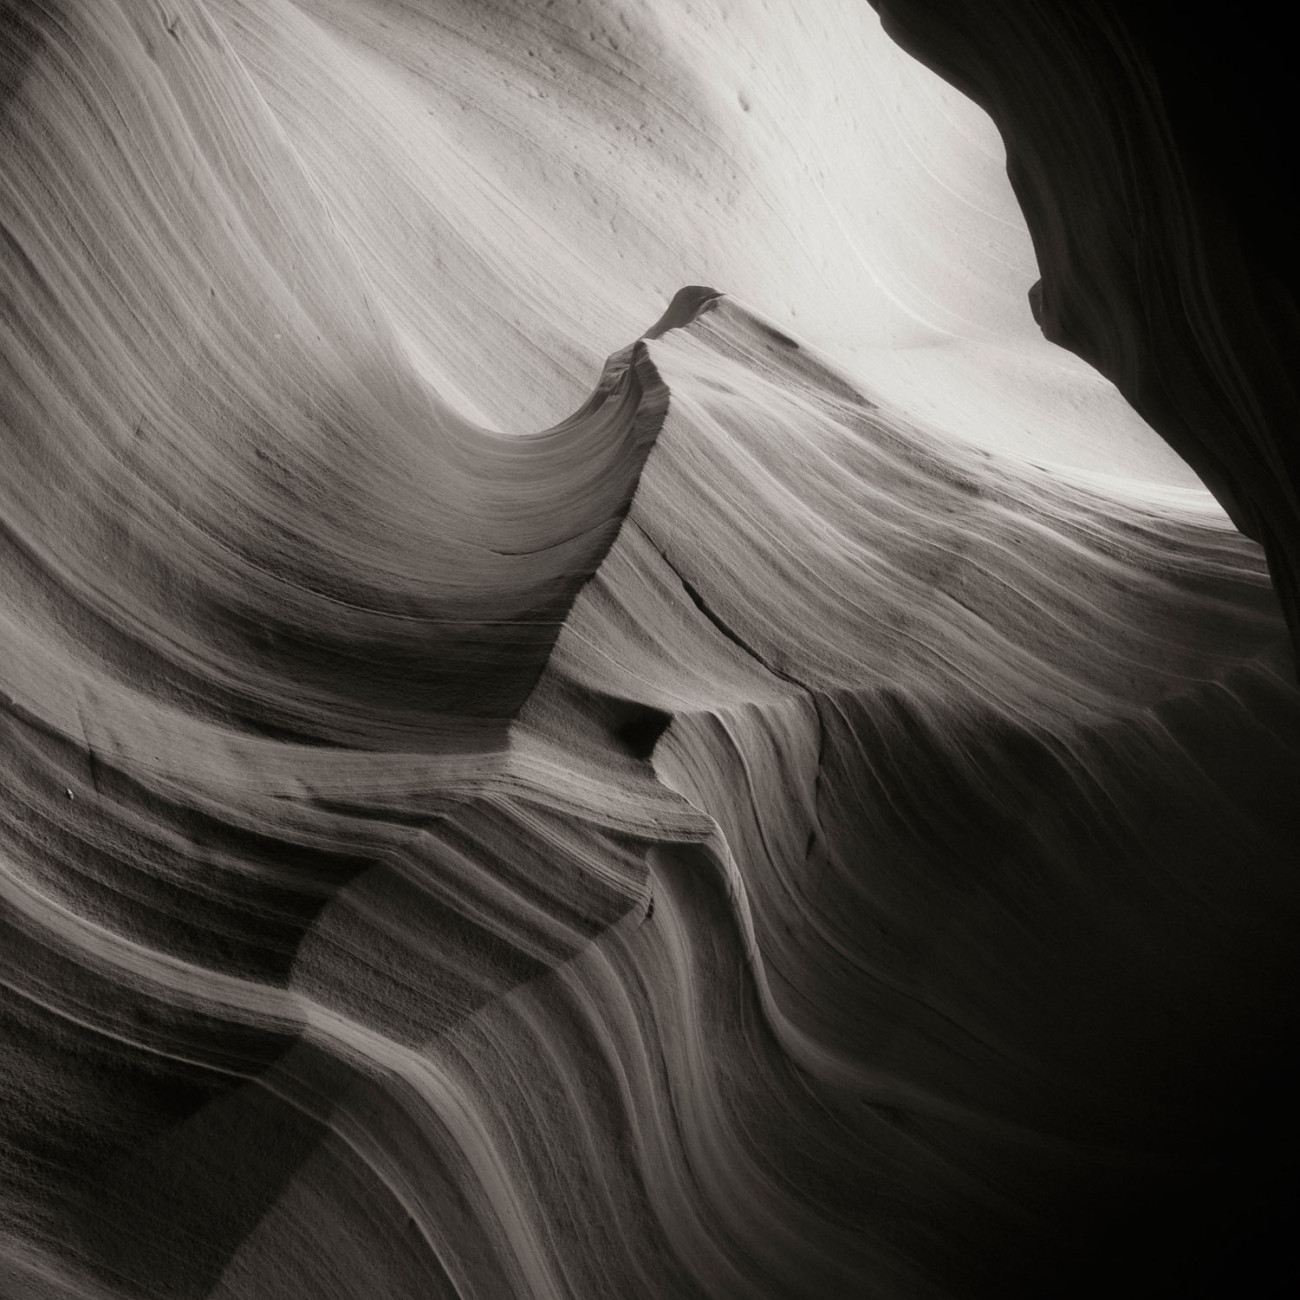 Antelope Canyon, study 2, Arizona, 2008